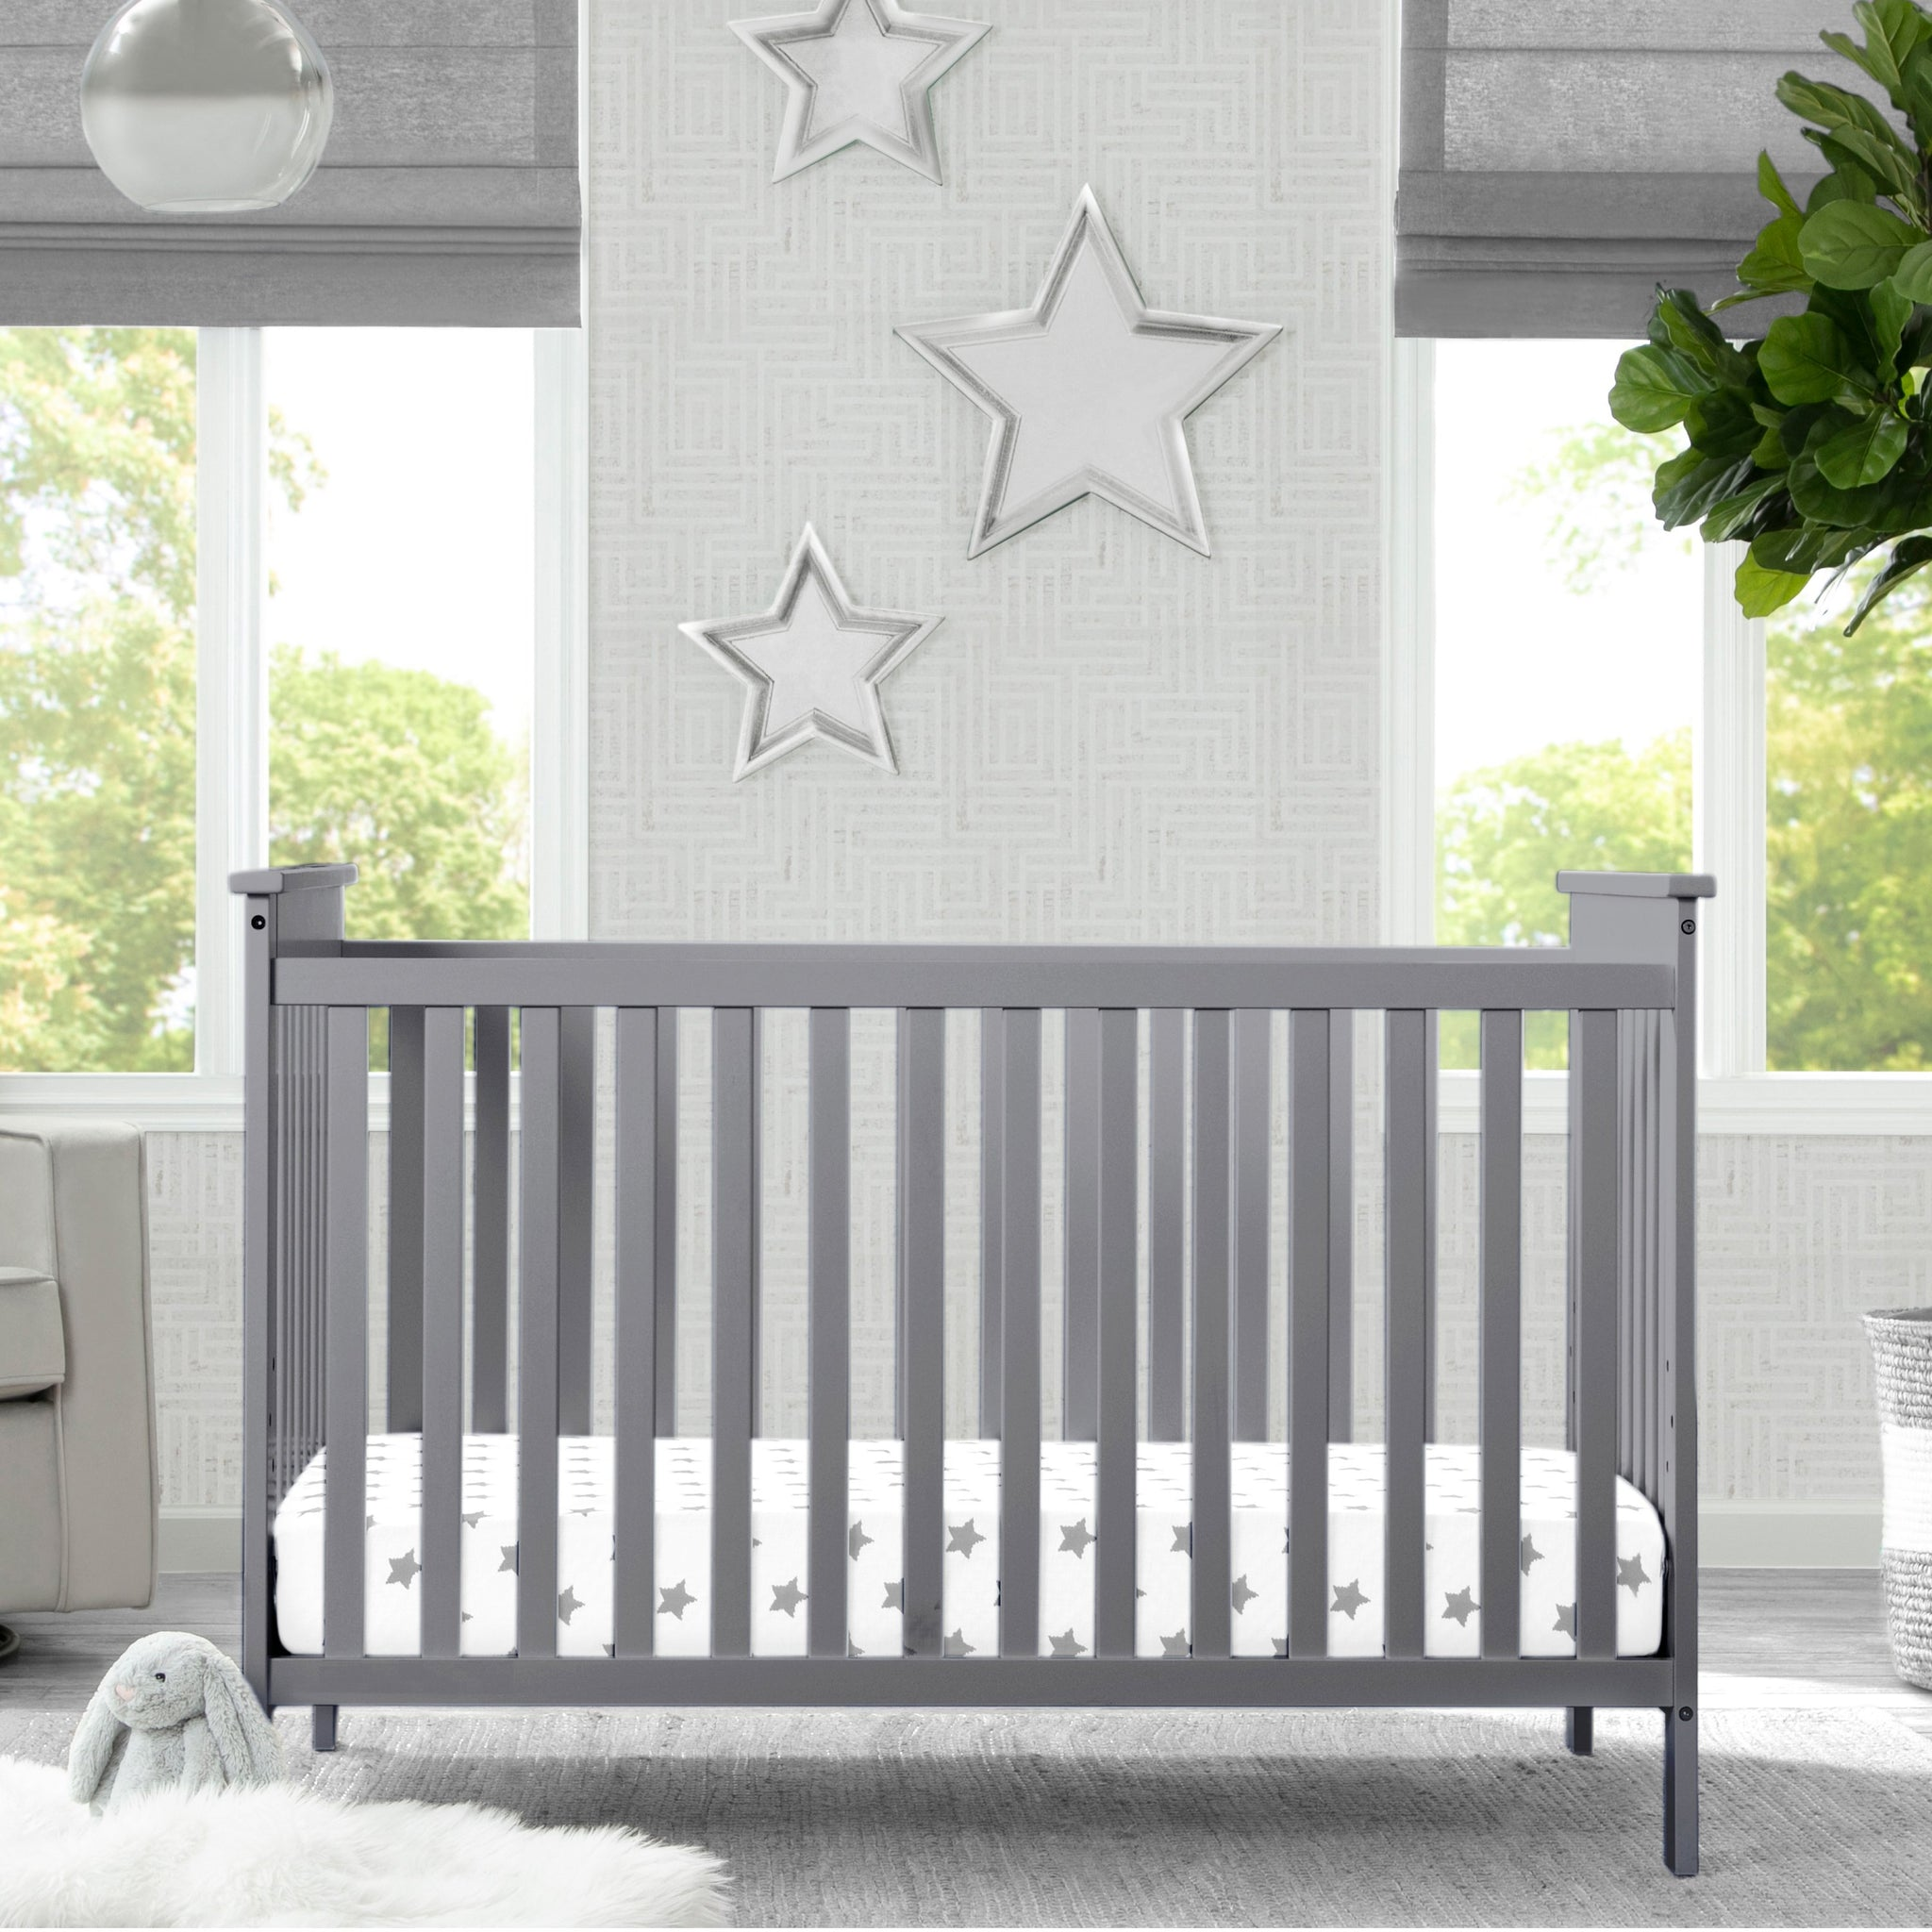 Adley 3-in-1 Convertible Crib